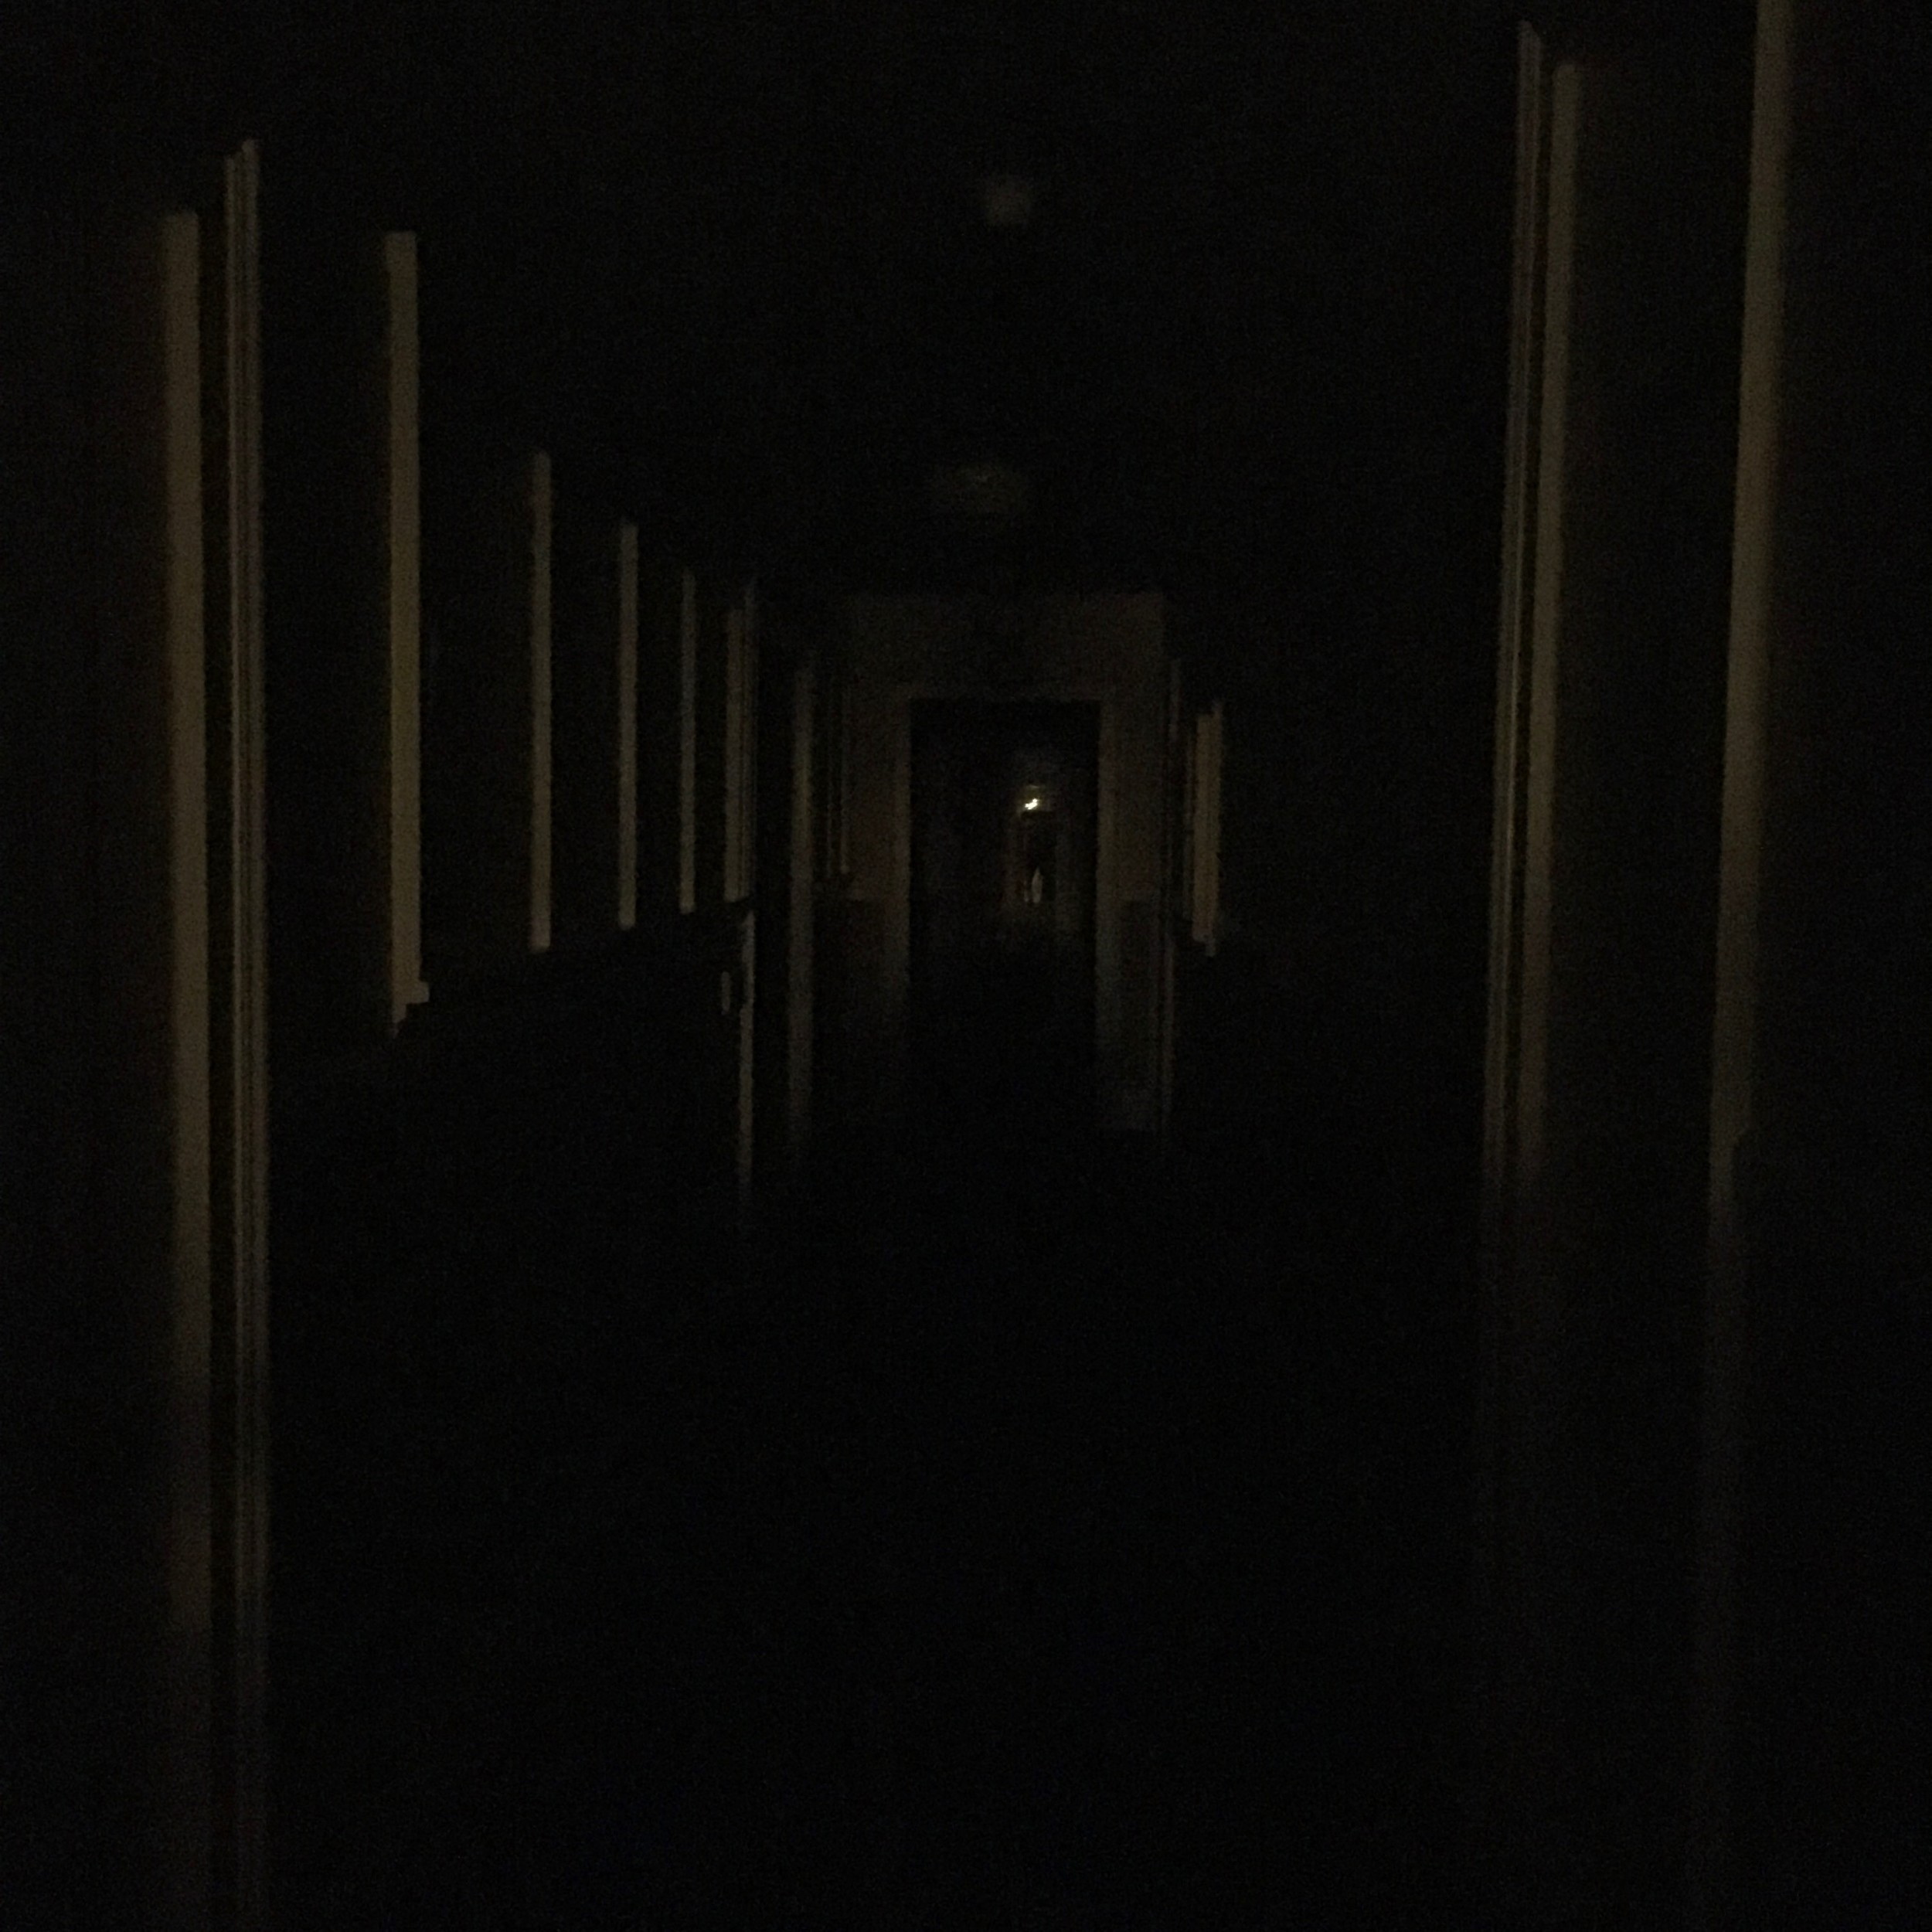 A not-at-all-haunted hallway at the Mount Washington Hotel's Bretton Arms Inn